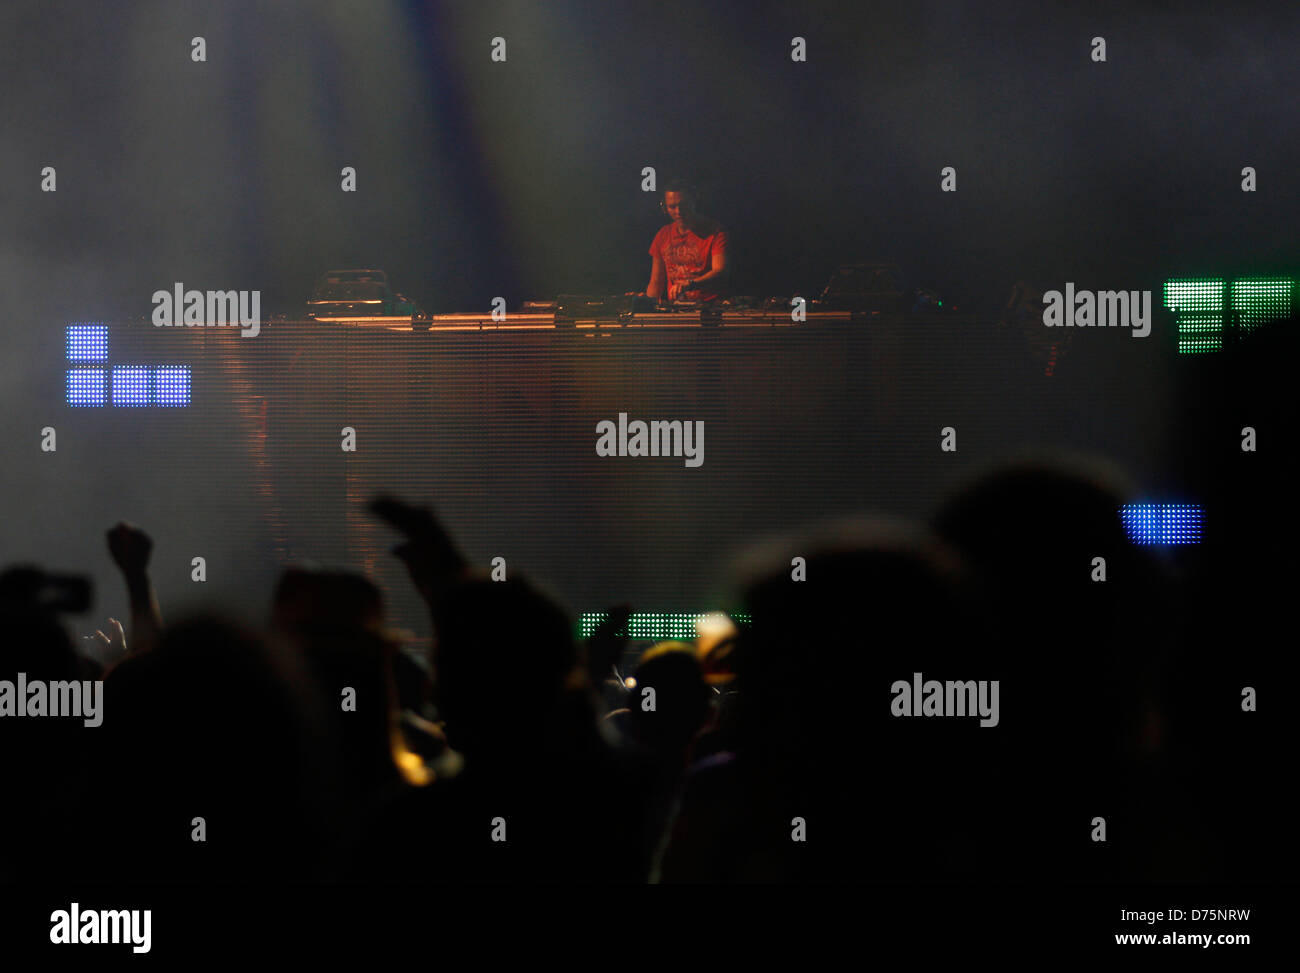 DJ Tiesto performs during a live event in the Spanish Balearic island of Ibiza. - Stock Image